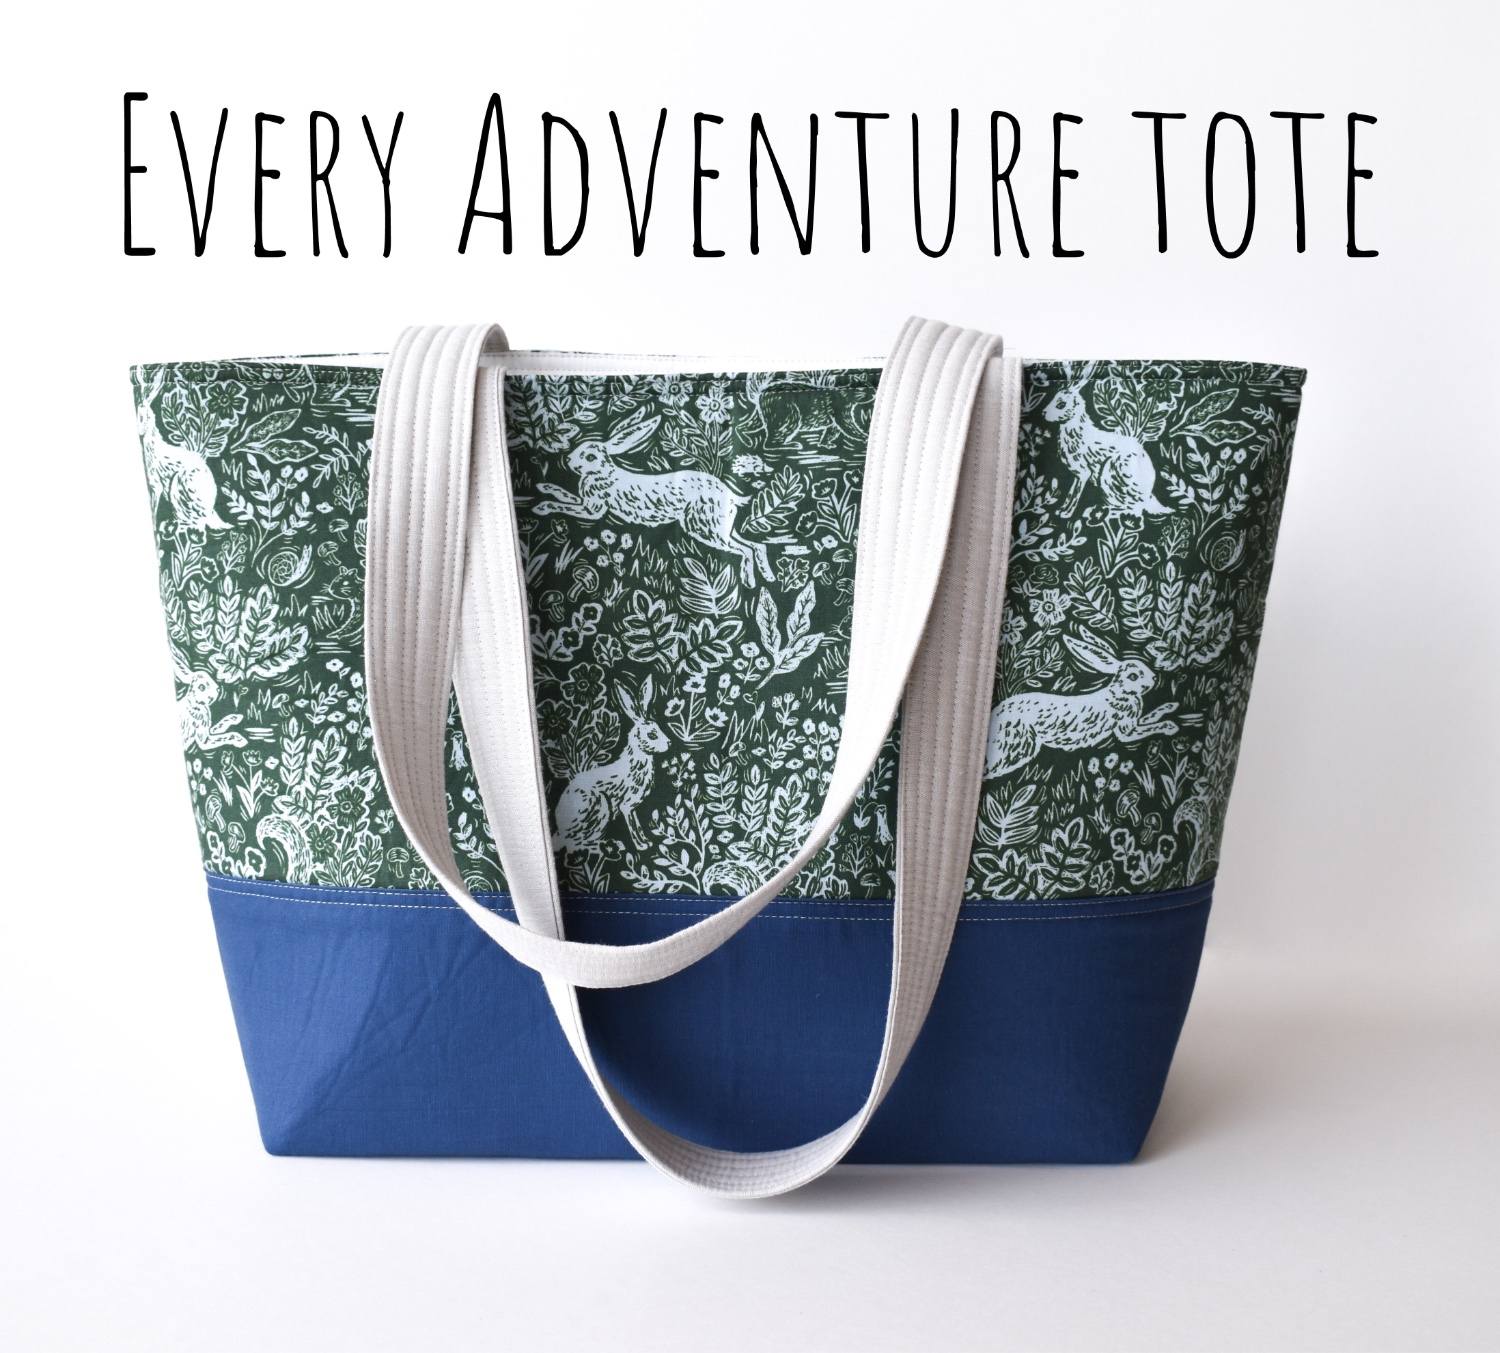 The Every Adventure Tote | A Tutorial